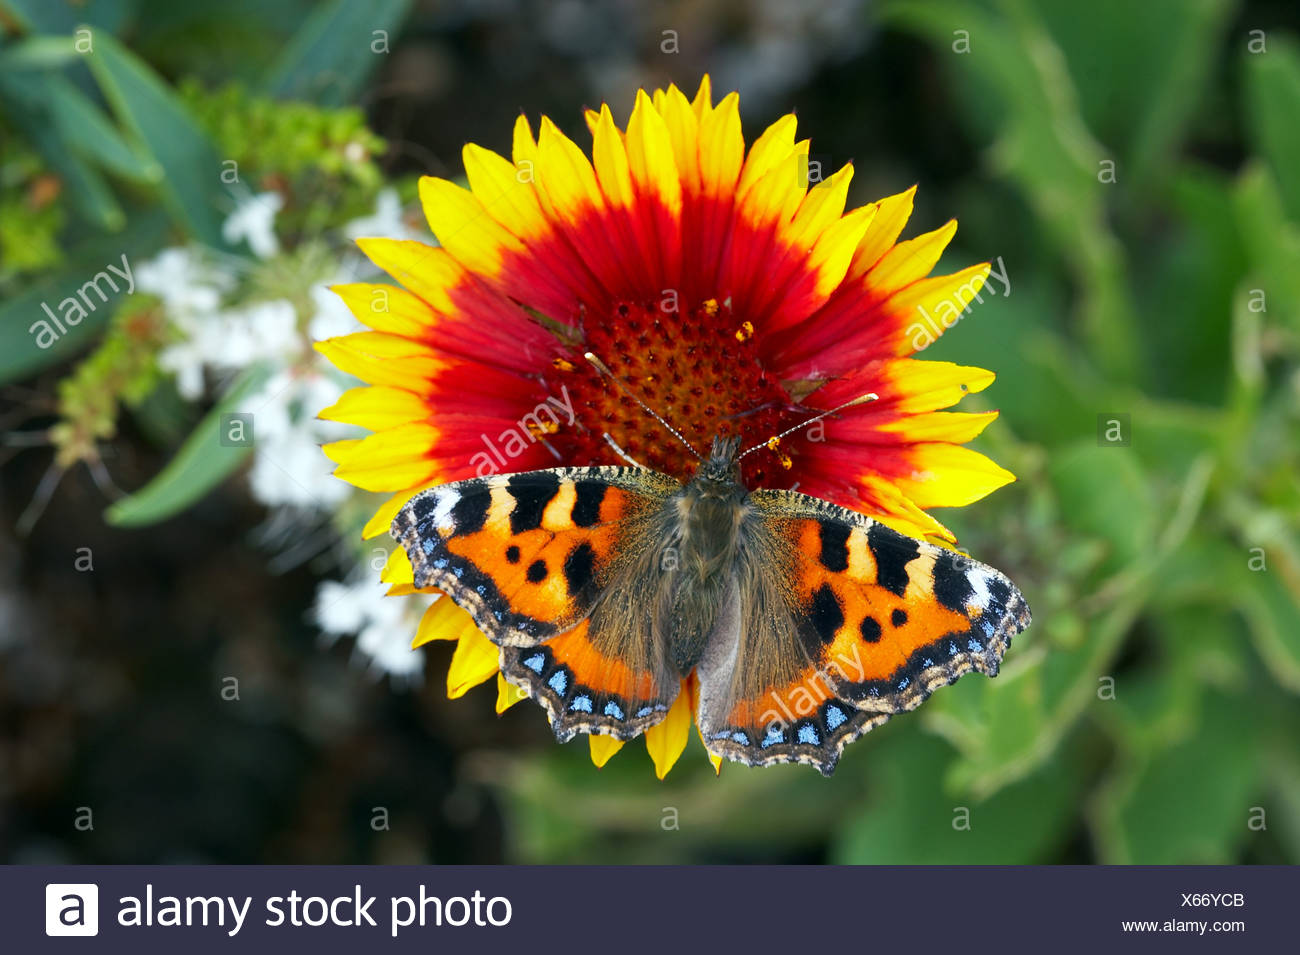 animal animals butterfly butterflies insect insects invertebrate invertebrates arthropod arthropods tortoiseshells europe - Stock Image